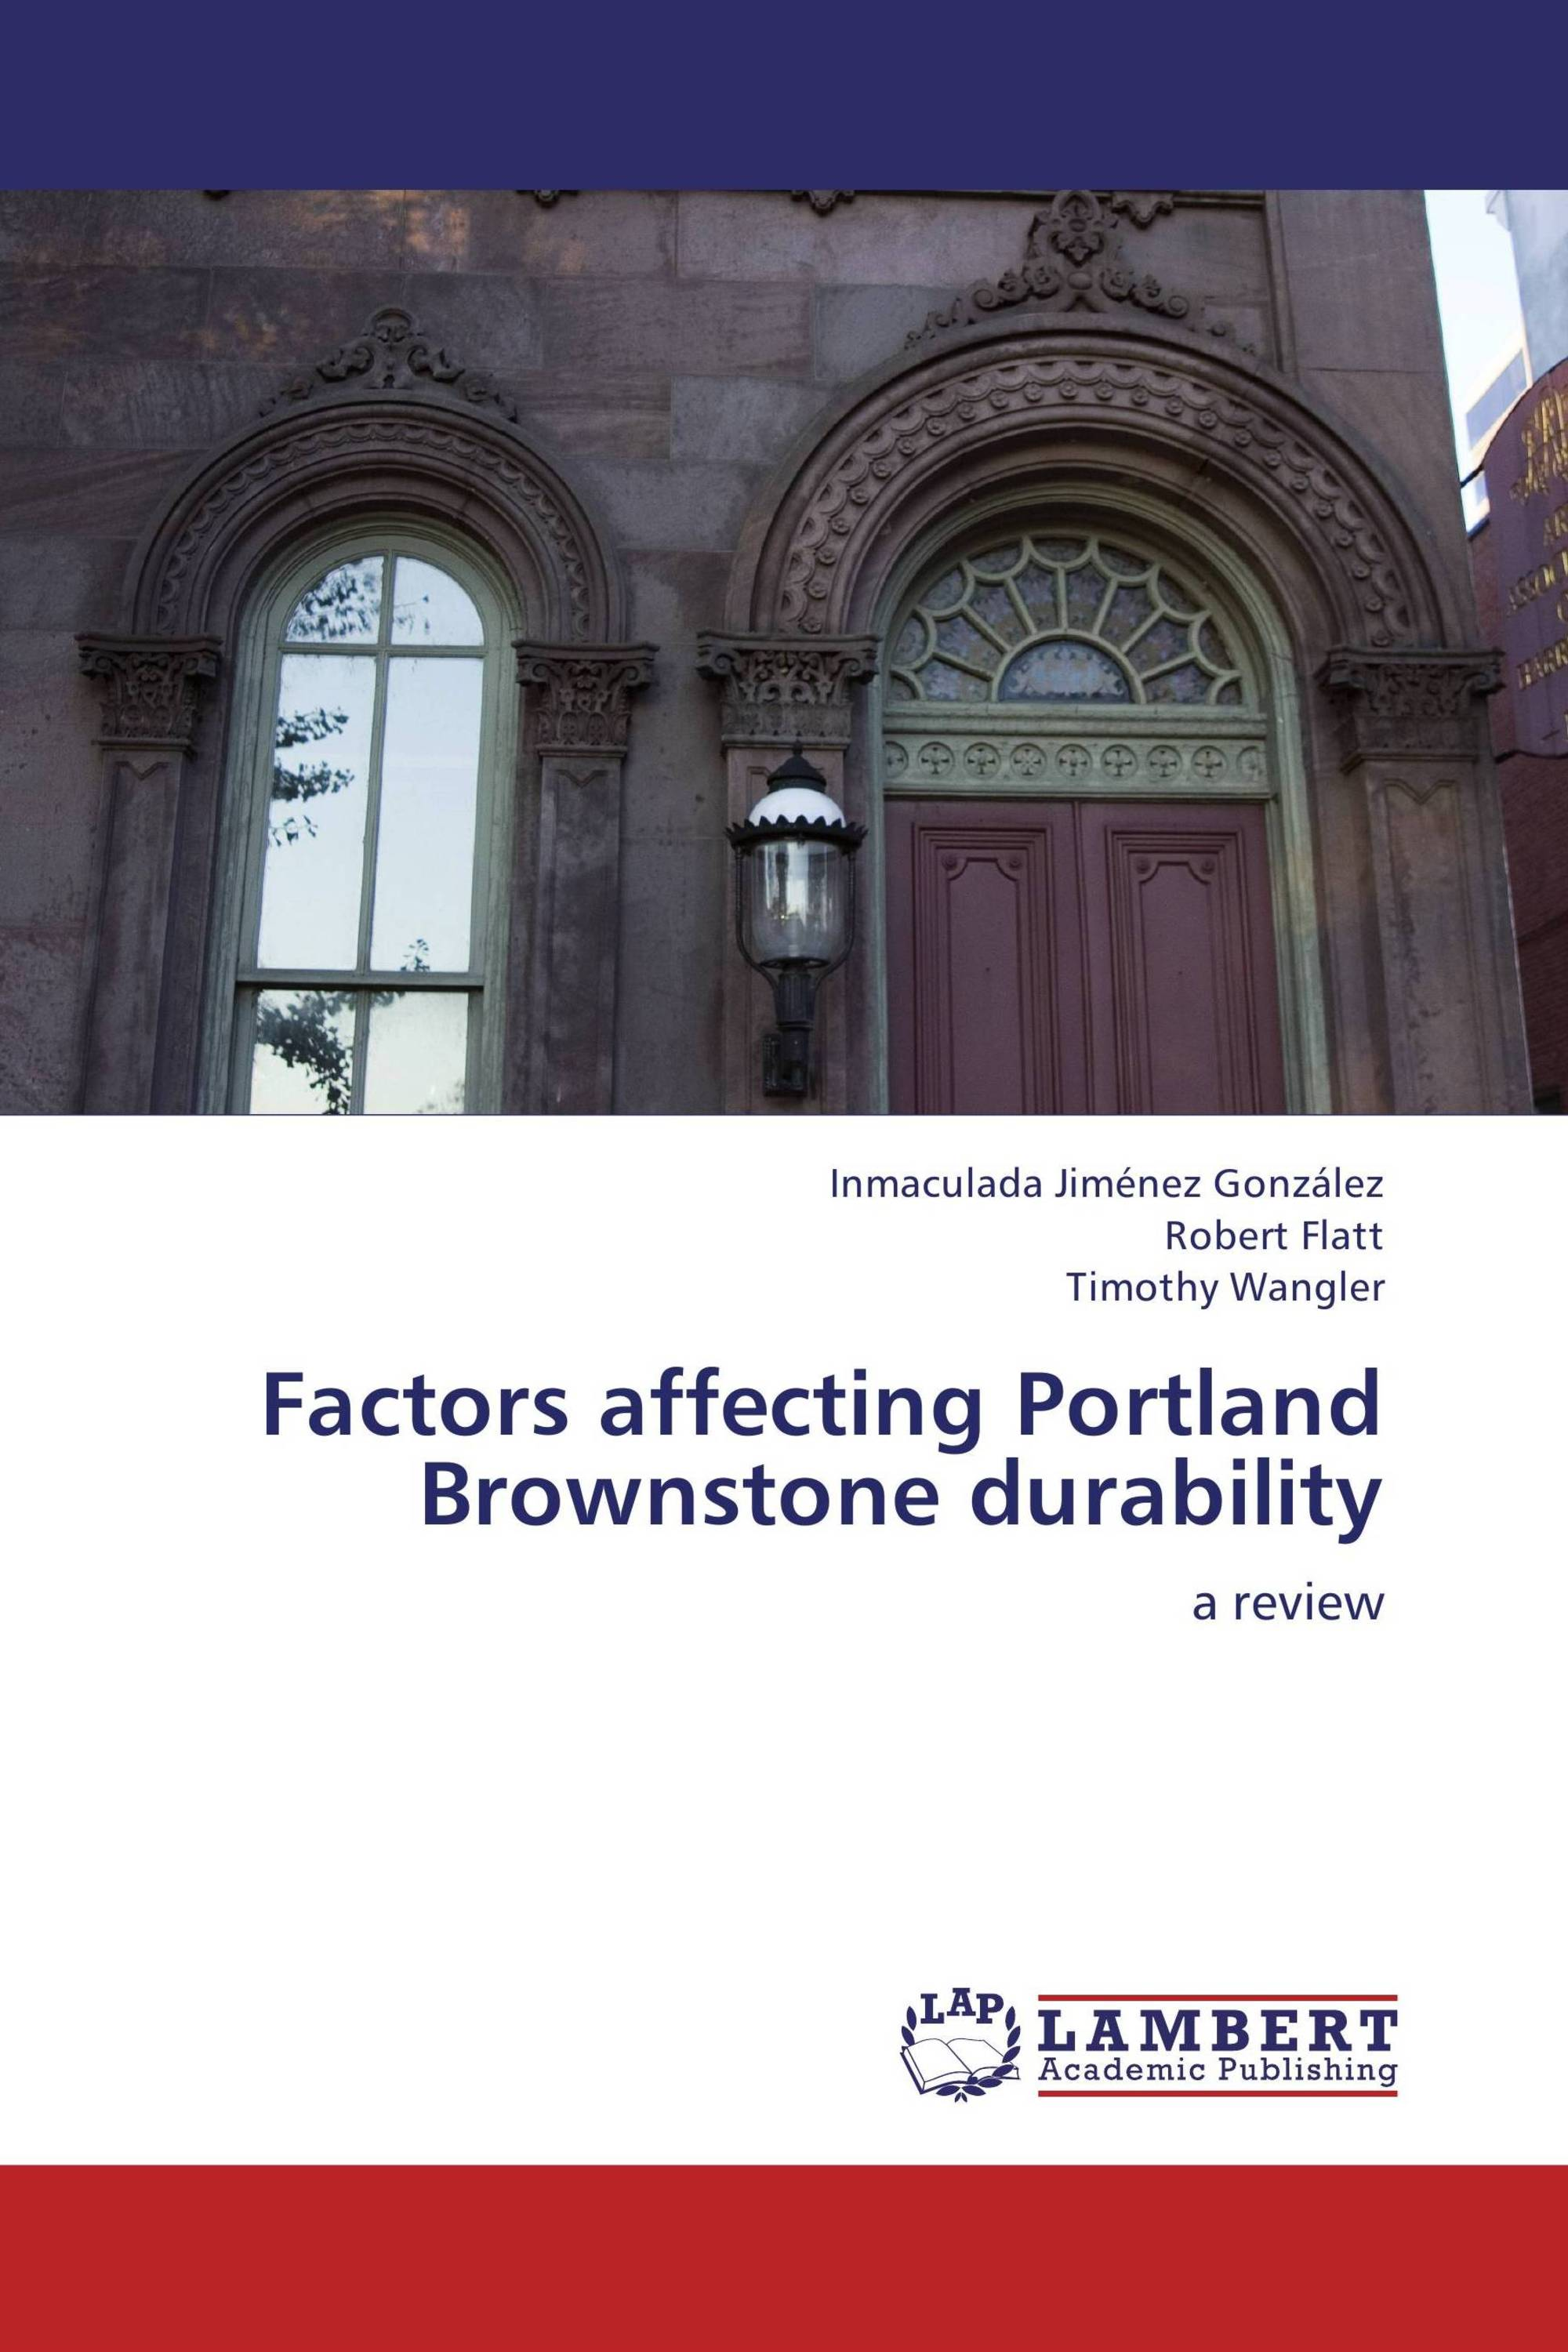 Factors affecting Portland Brownstone durability